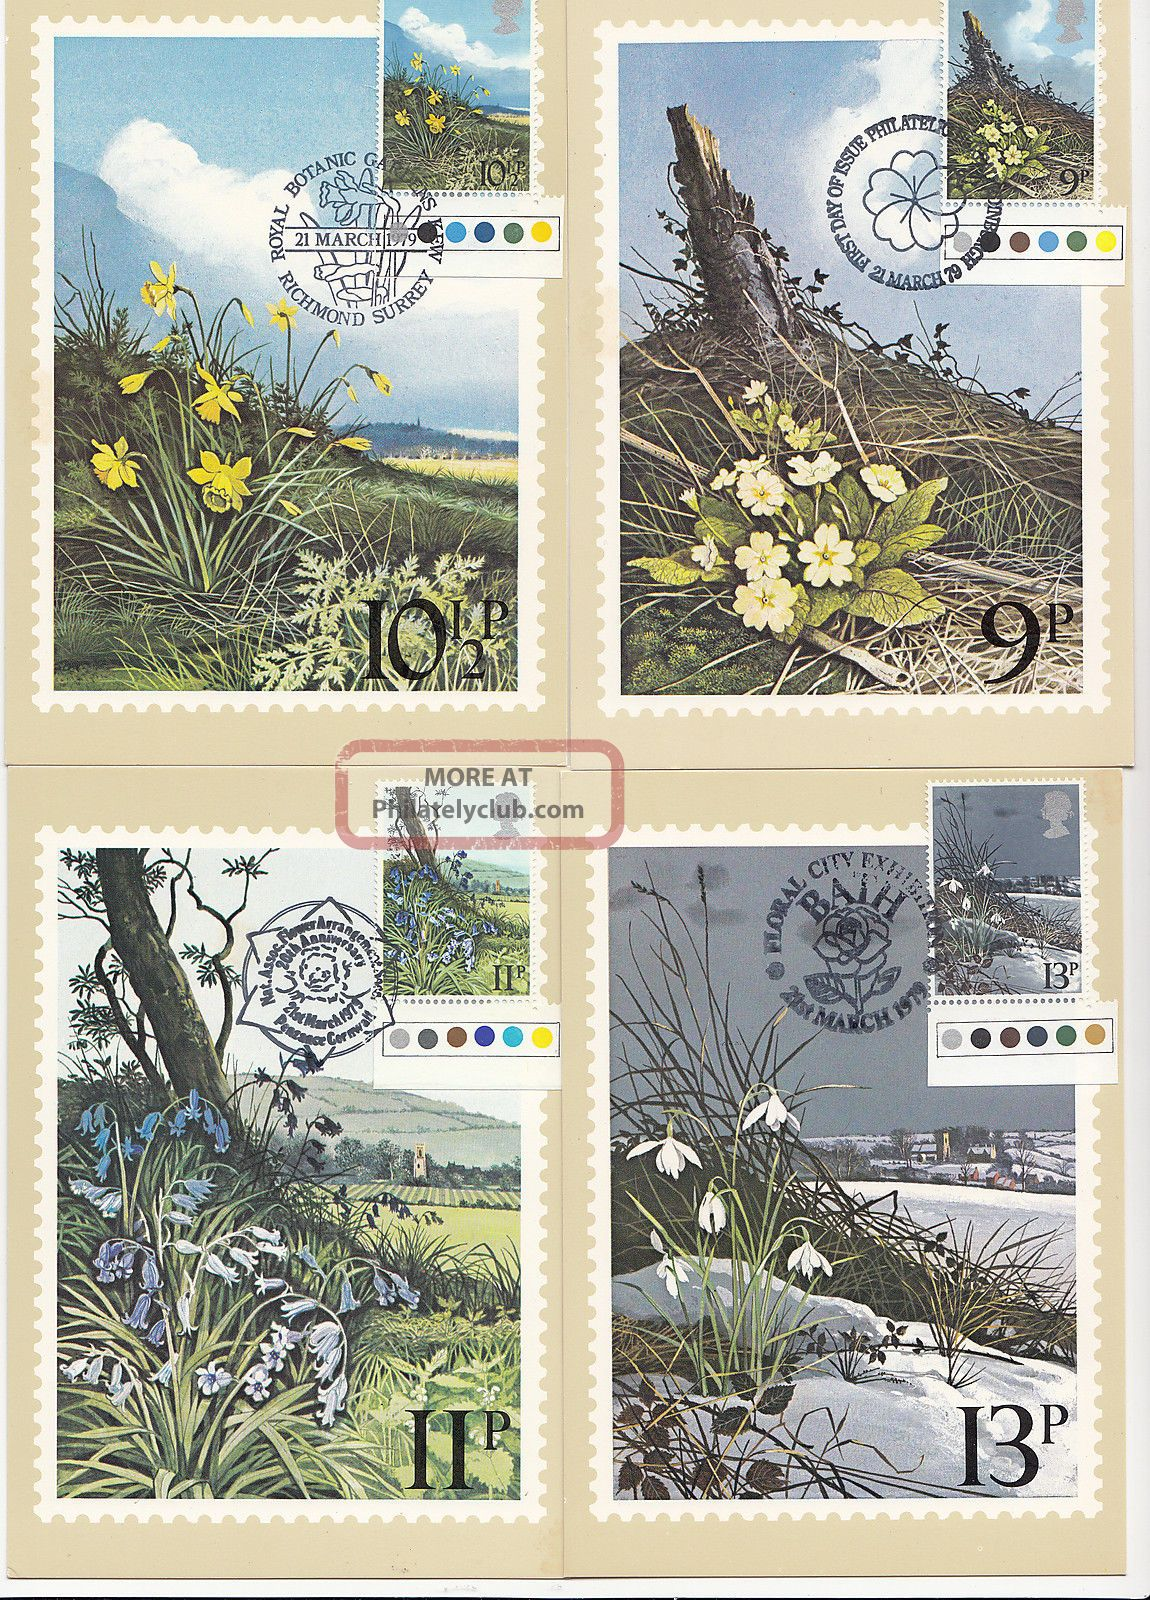 (32423) Gb Phq Fdi Flowers Traf Light Margin Maxicard / Postcard - 21 Mar 1979 1971-Now photo